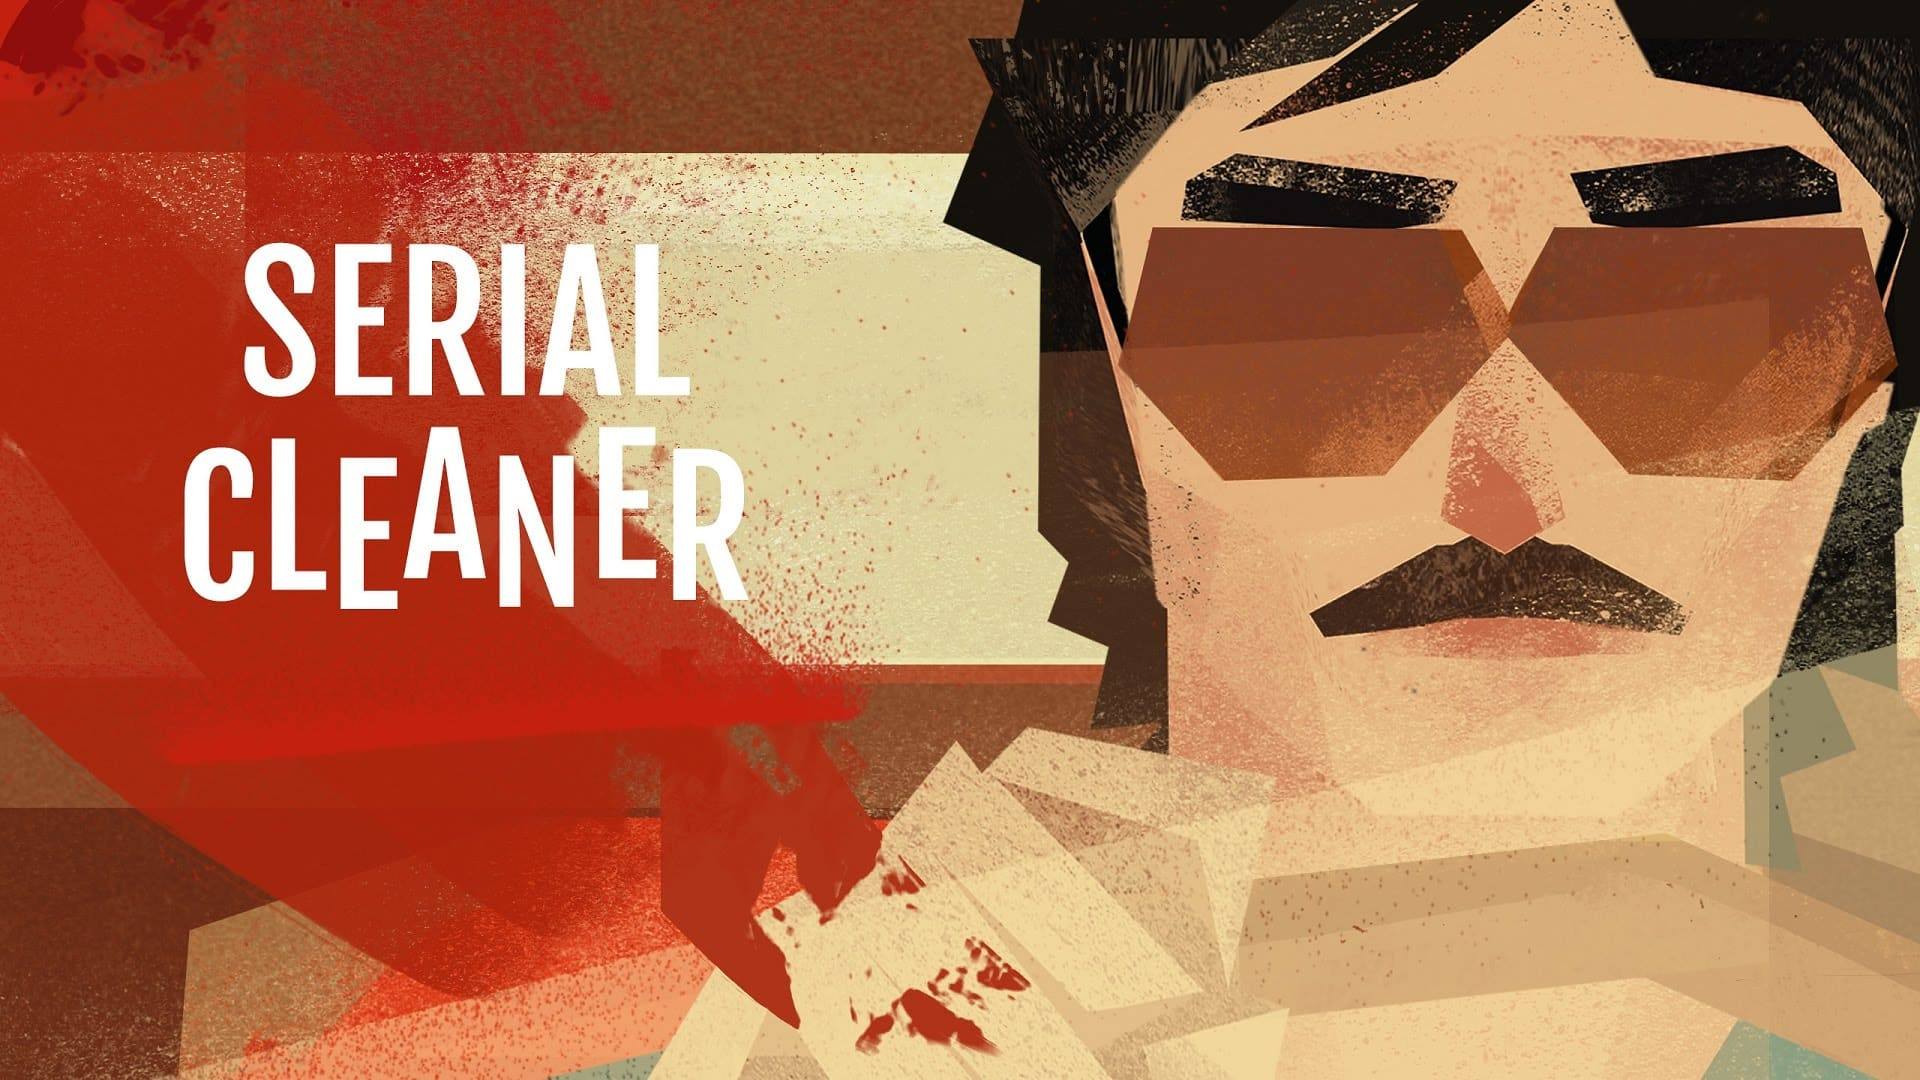 serial cleaner free game draw distance humble store